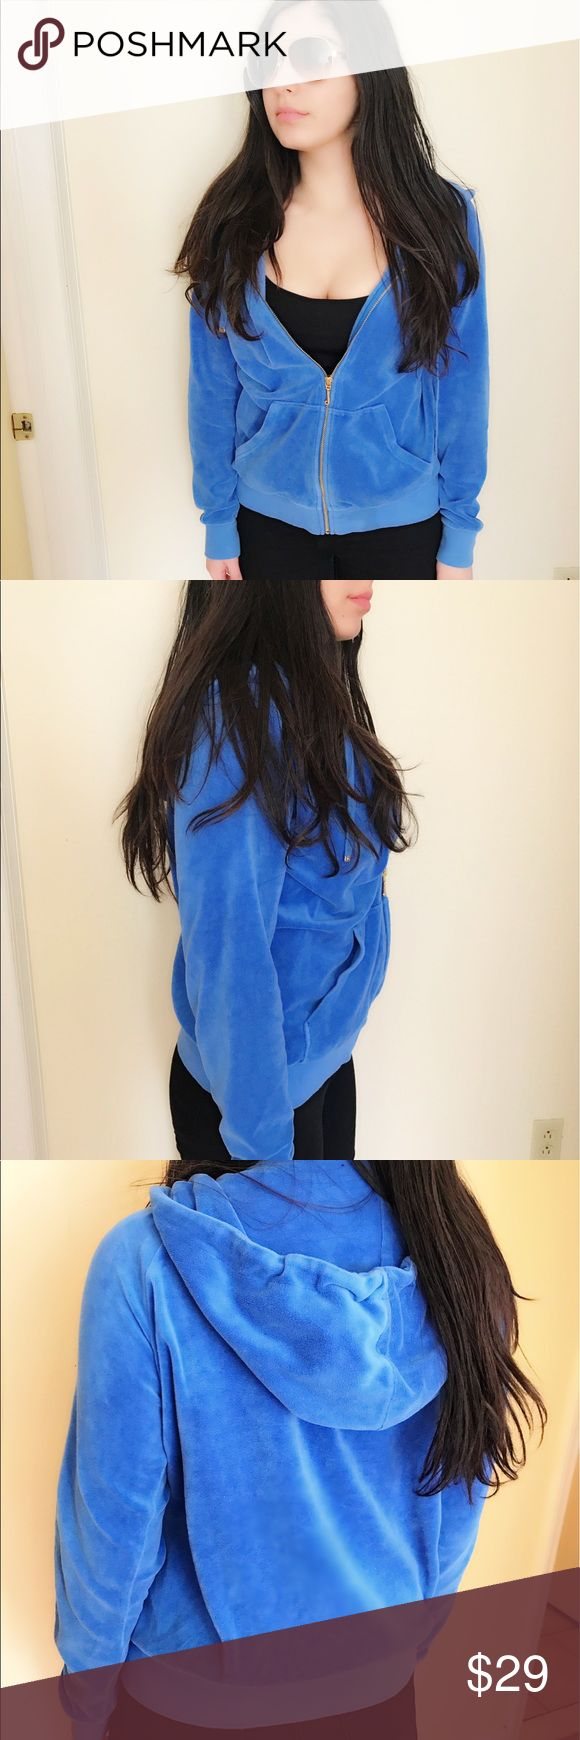 Juicy couture blue zip up jacket This Juicy jacket is brand new without tags and doesn't have any defects. It is warm and comfy. It is perfect for chilling in the house or whenever you want to feel comfy out. original size is a small but, it fits like a medium. If you like your jackets a bit oversized and you wear a small, then this would be fine too ❤️ Juicy Couture Jackets & Coats